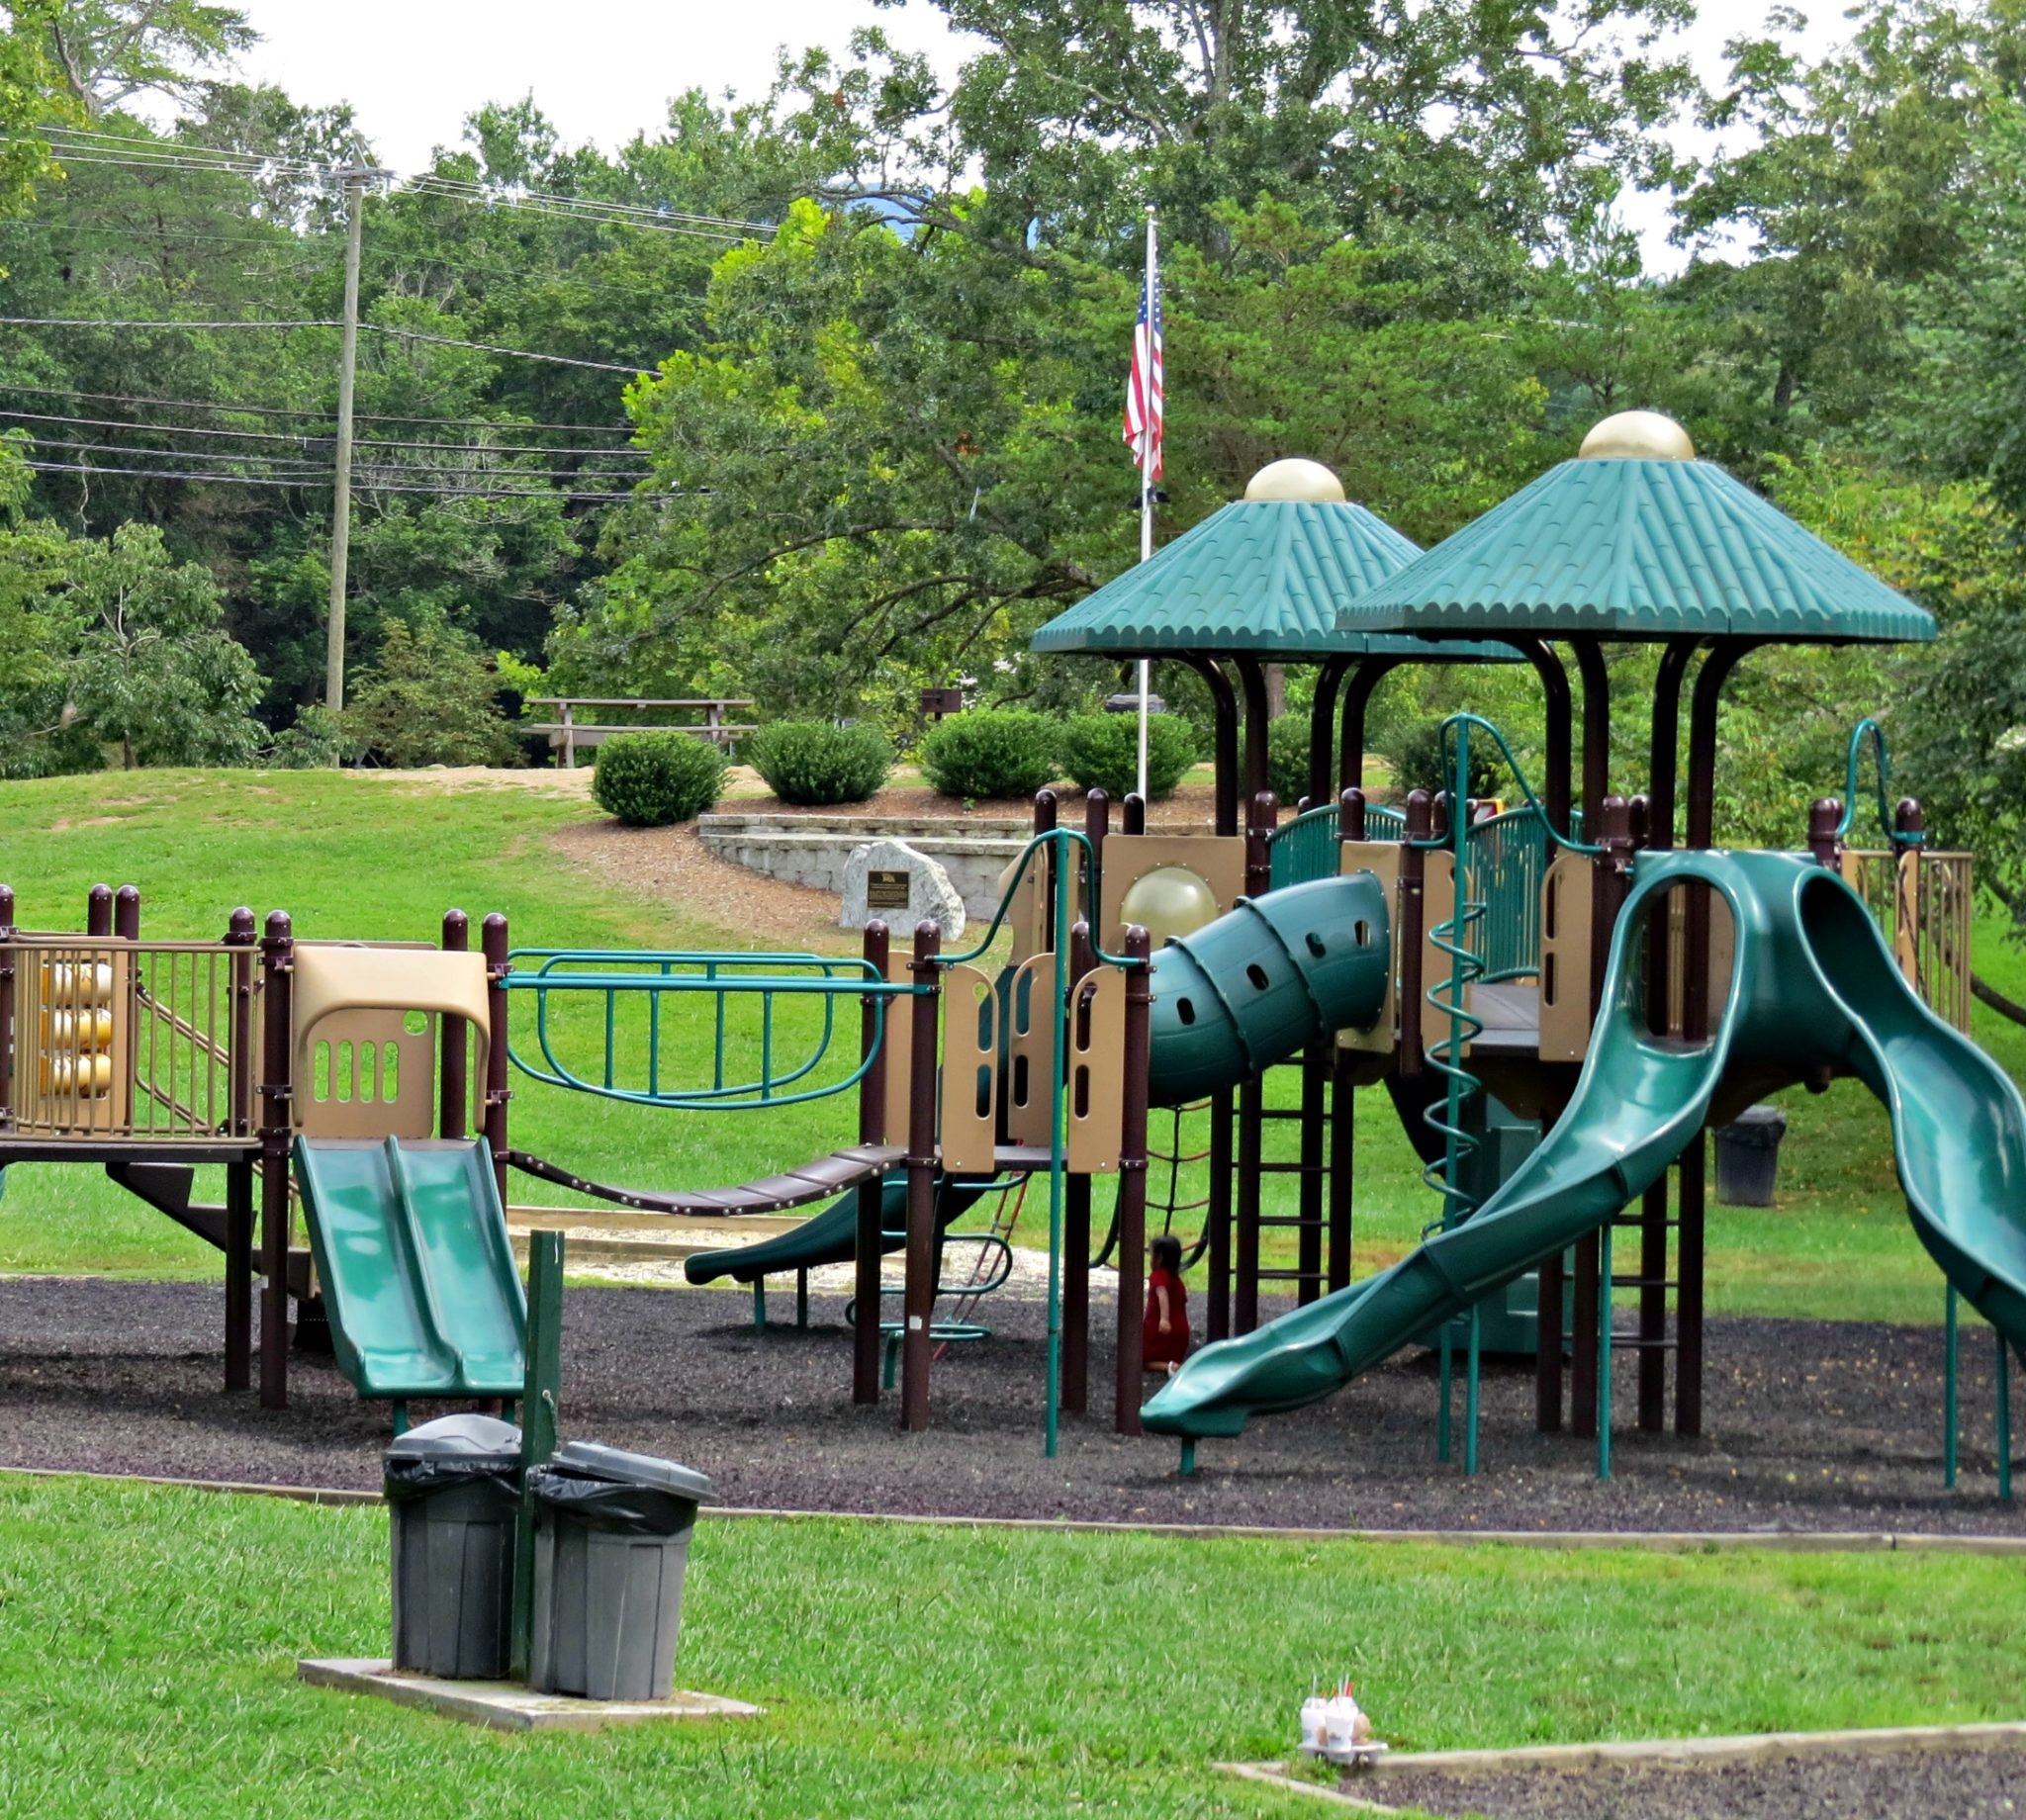 Town Of Weaverville NC Playground Equipment